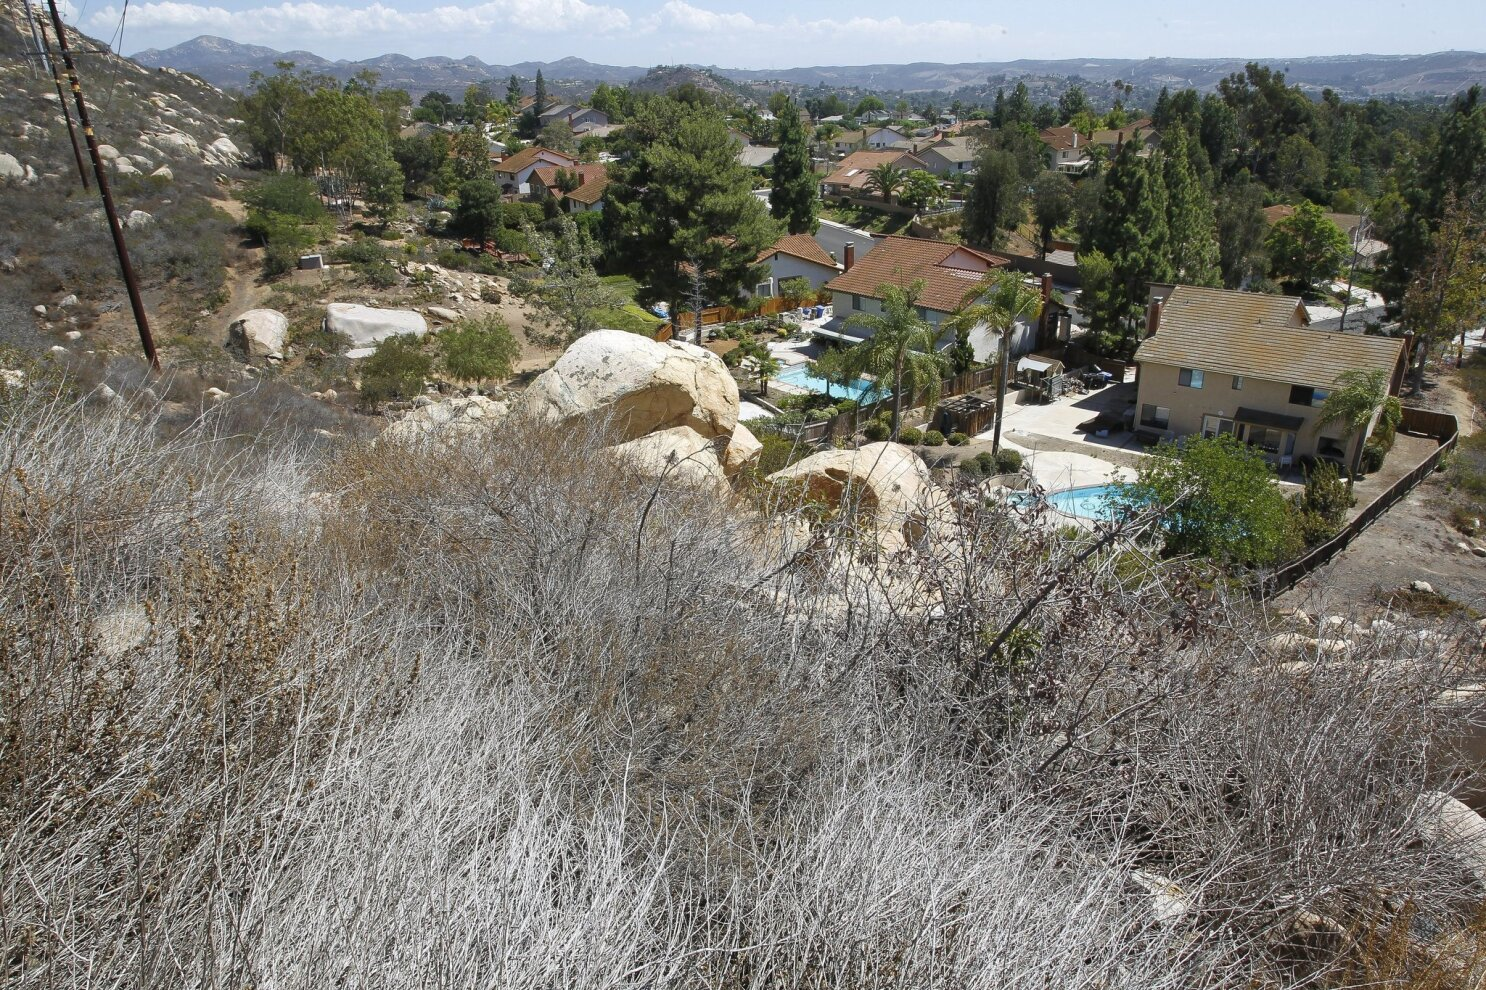 Dry brush could lead to big fires - The San Diego Union-Tribune